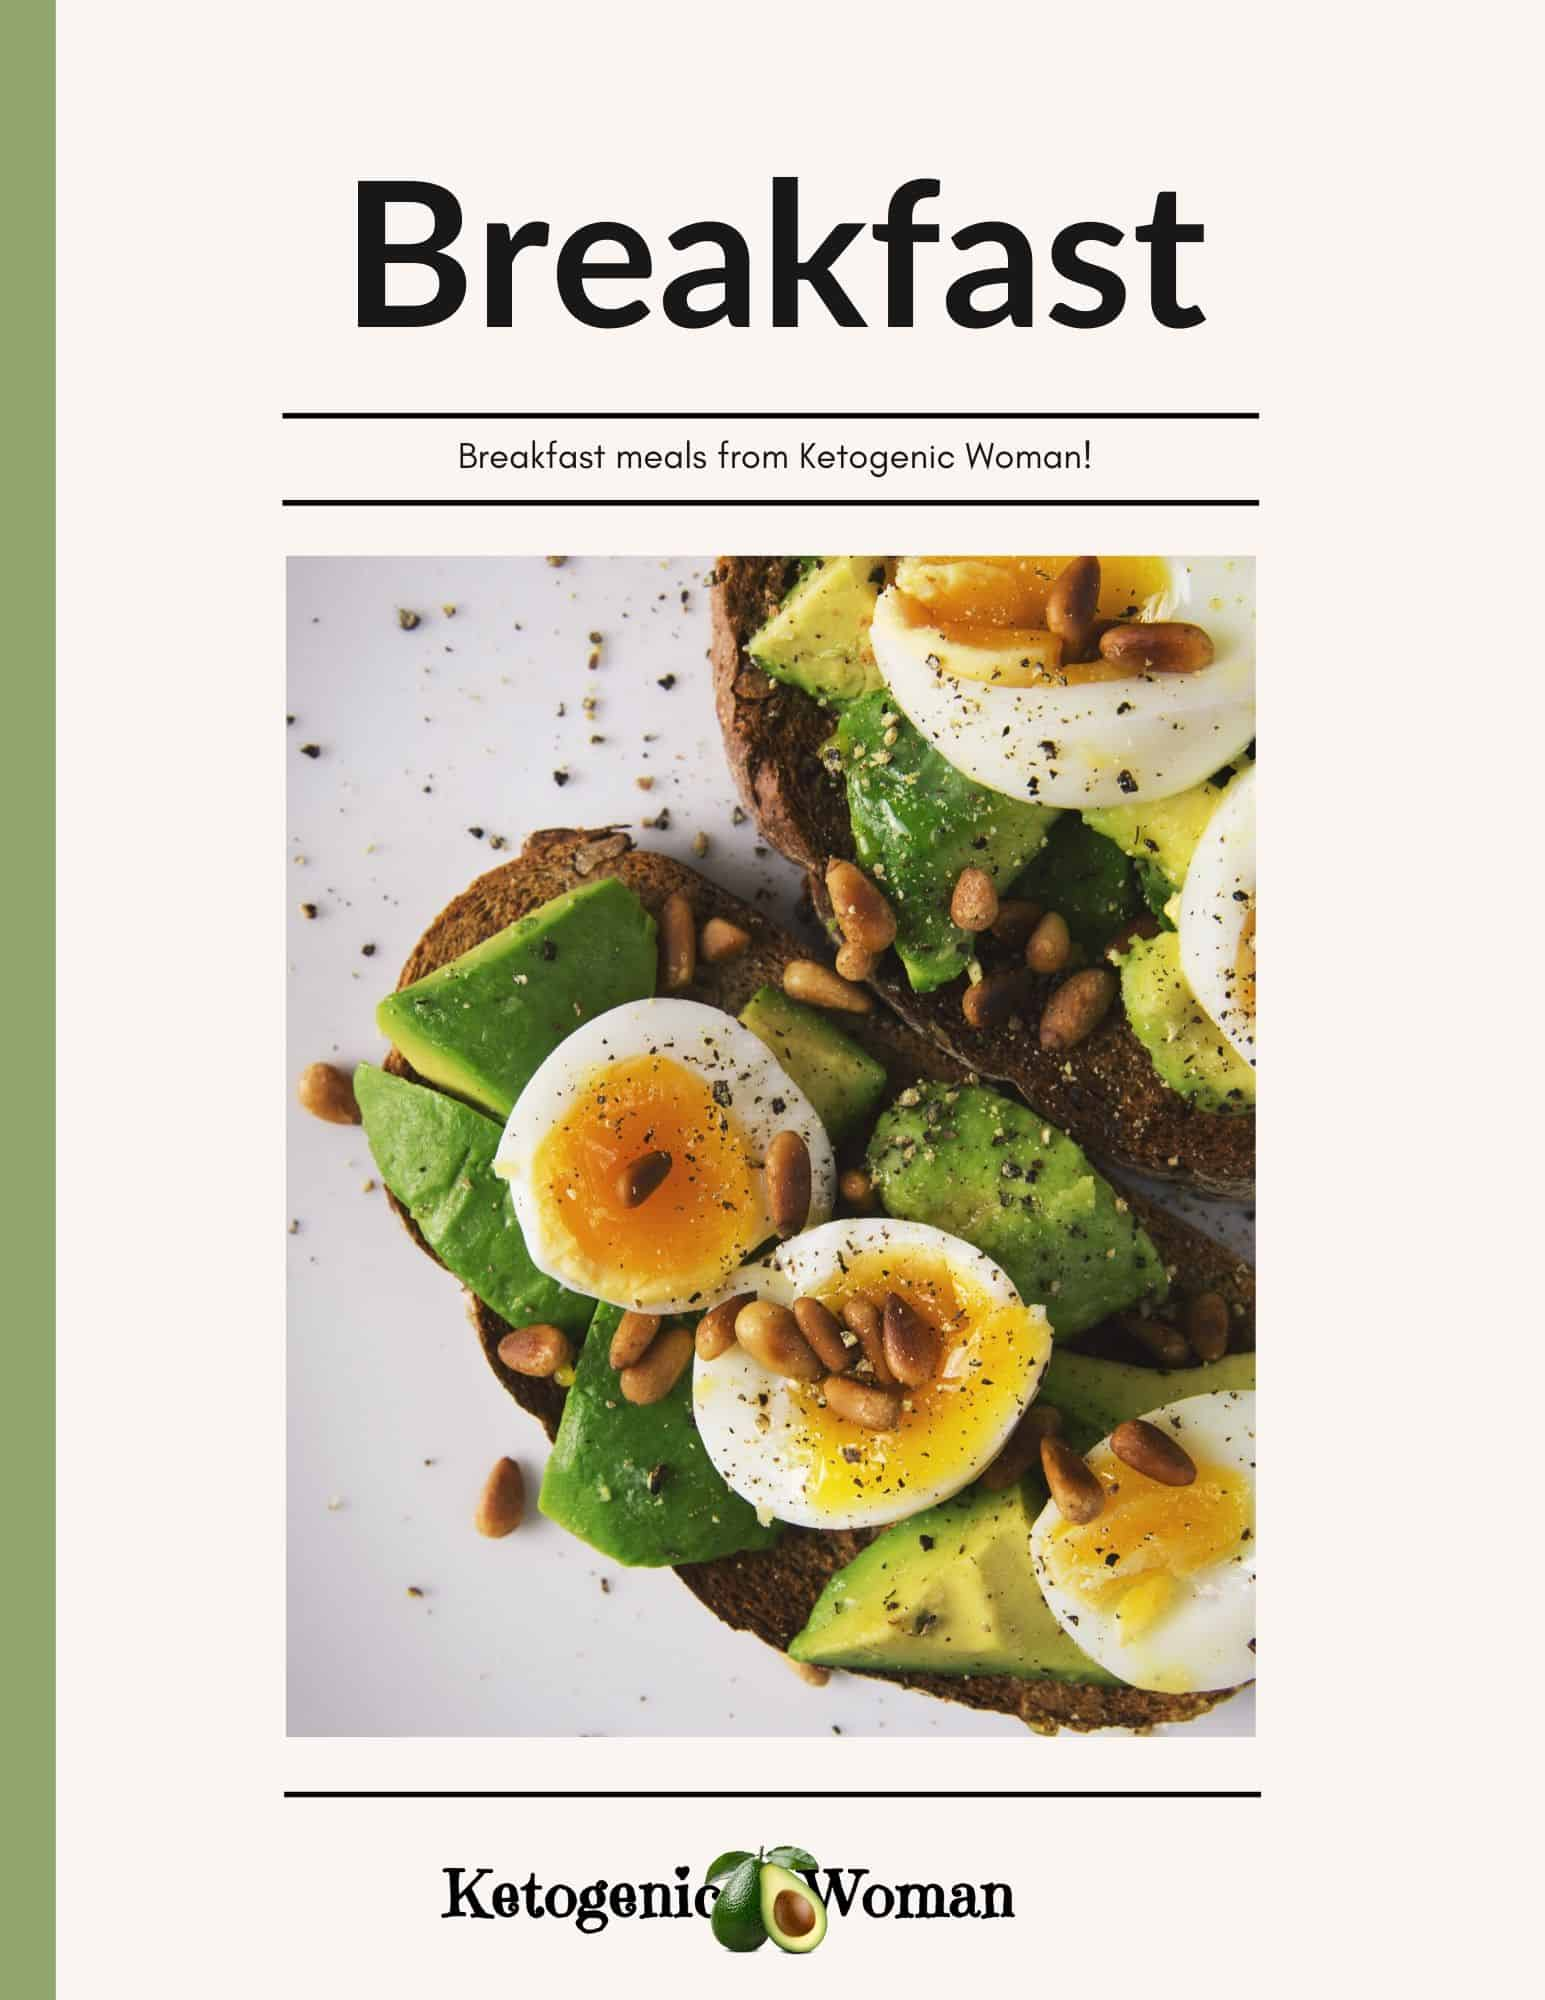 Keto Breakfast recipe book cover